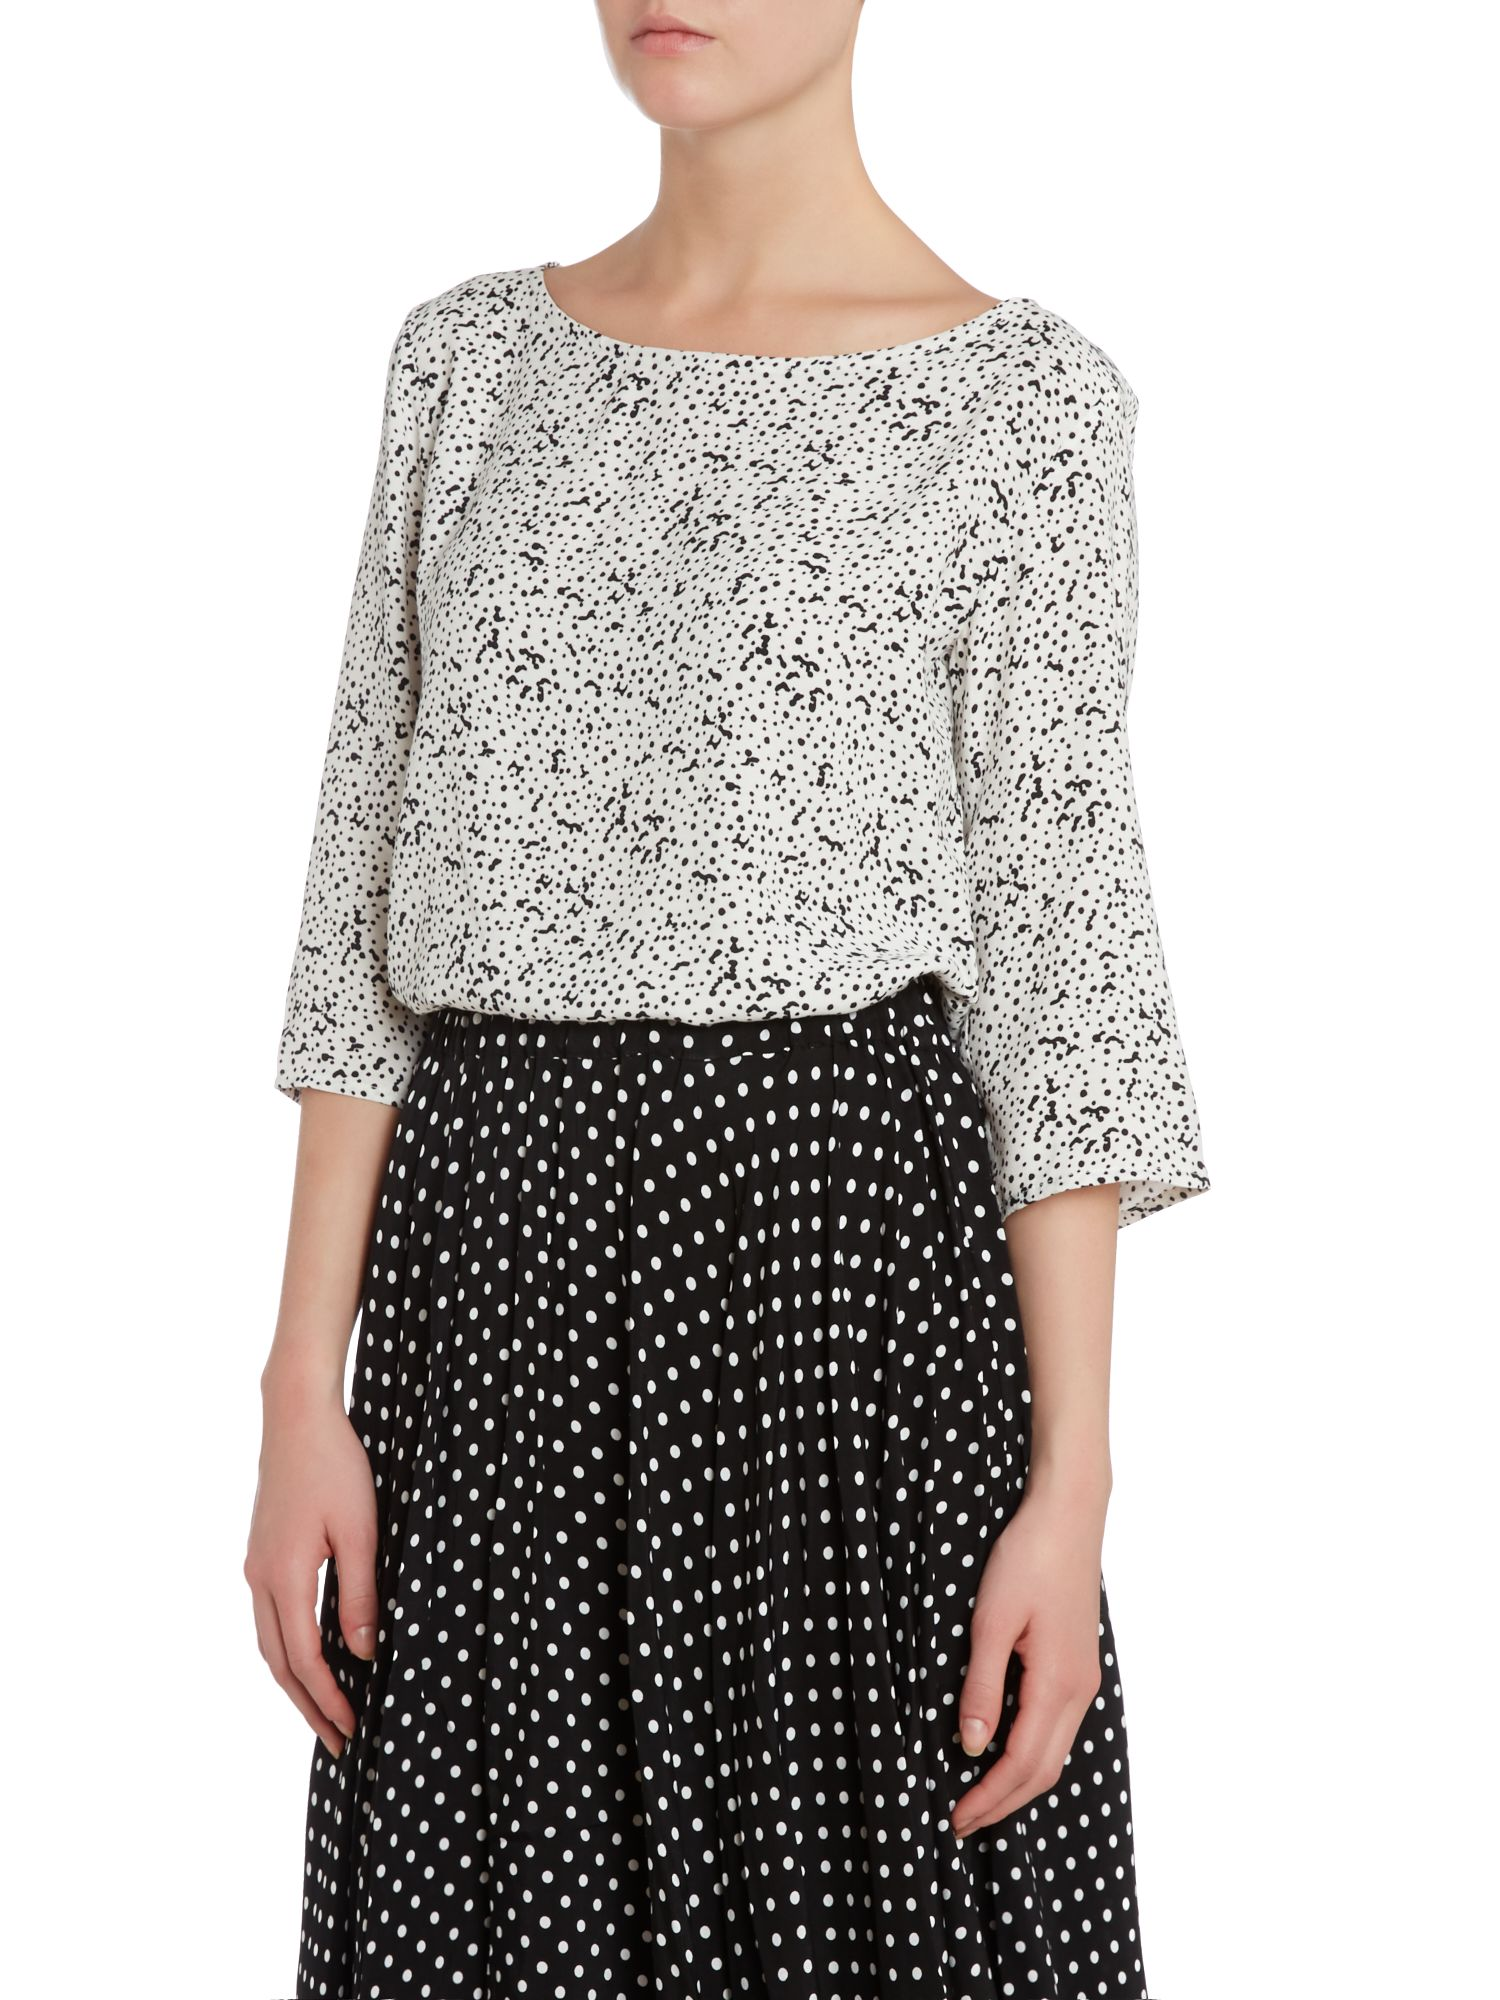 Spots print slash neck blouse